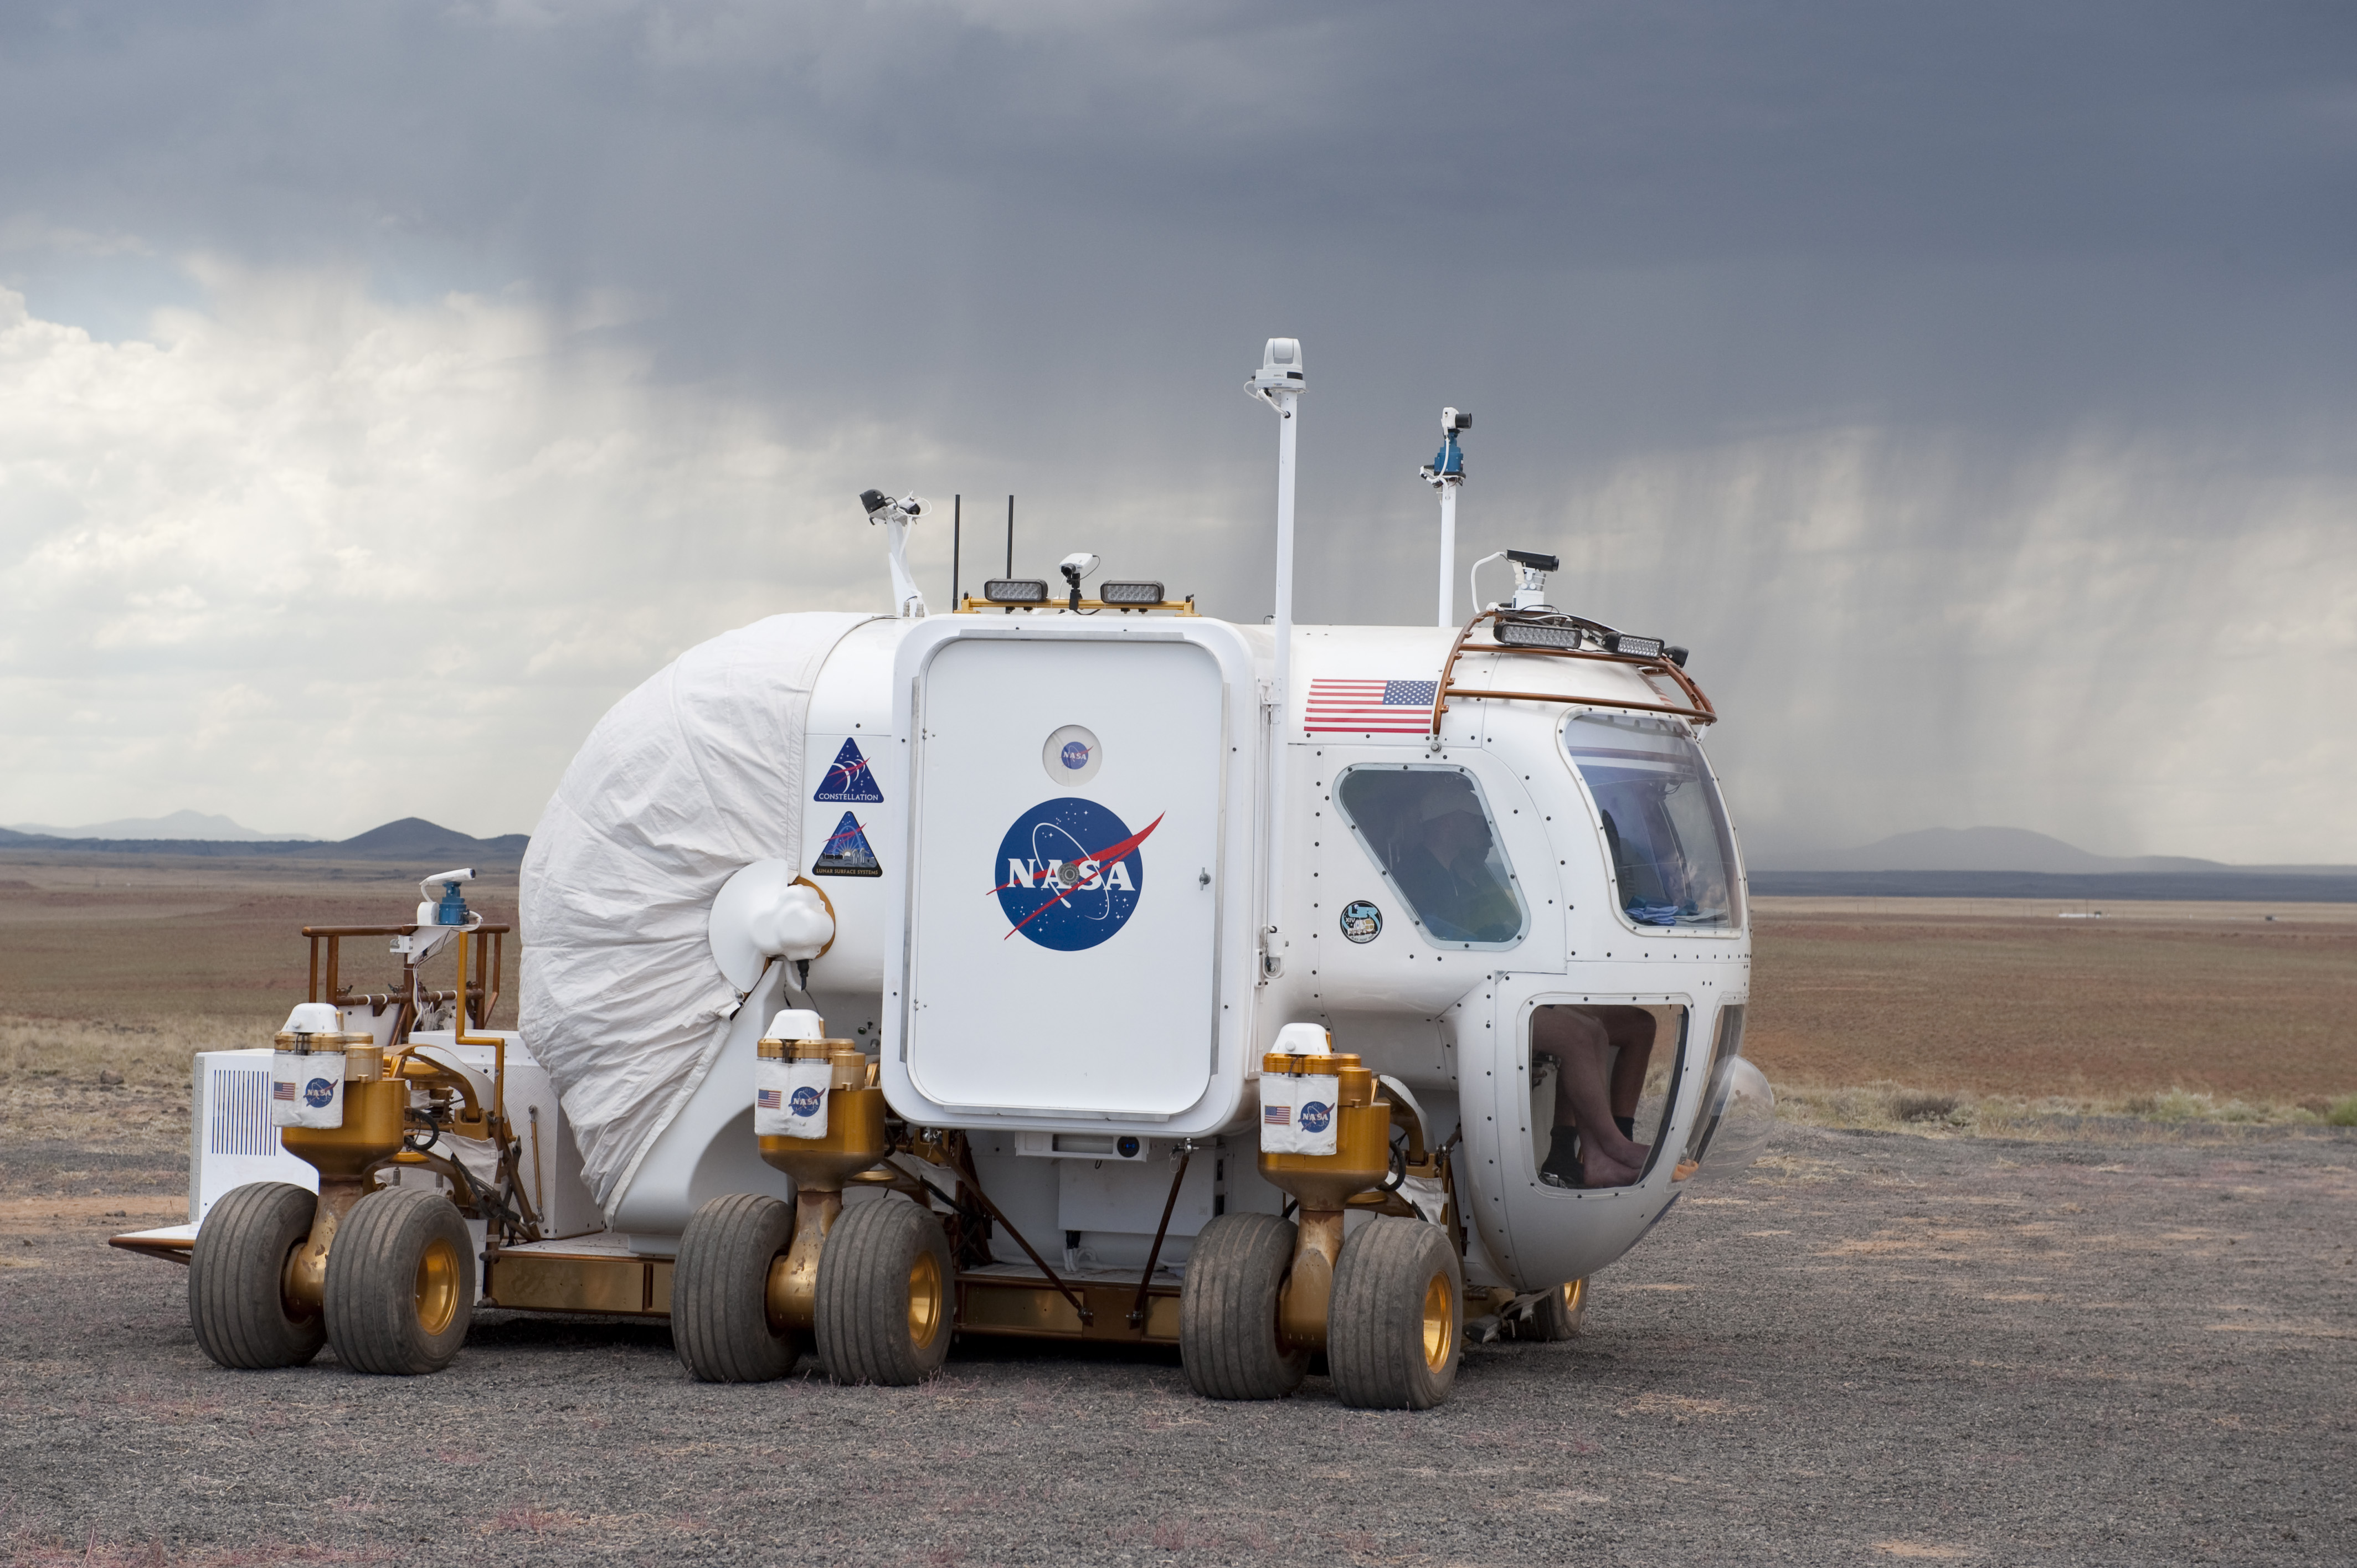 pictures of nasa security vehicles - photo #32